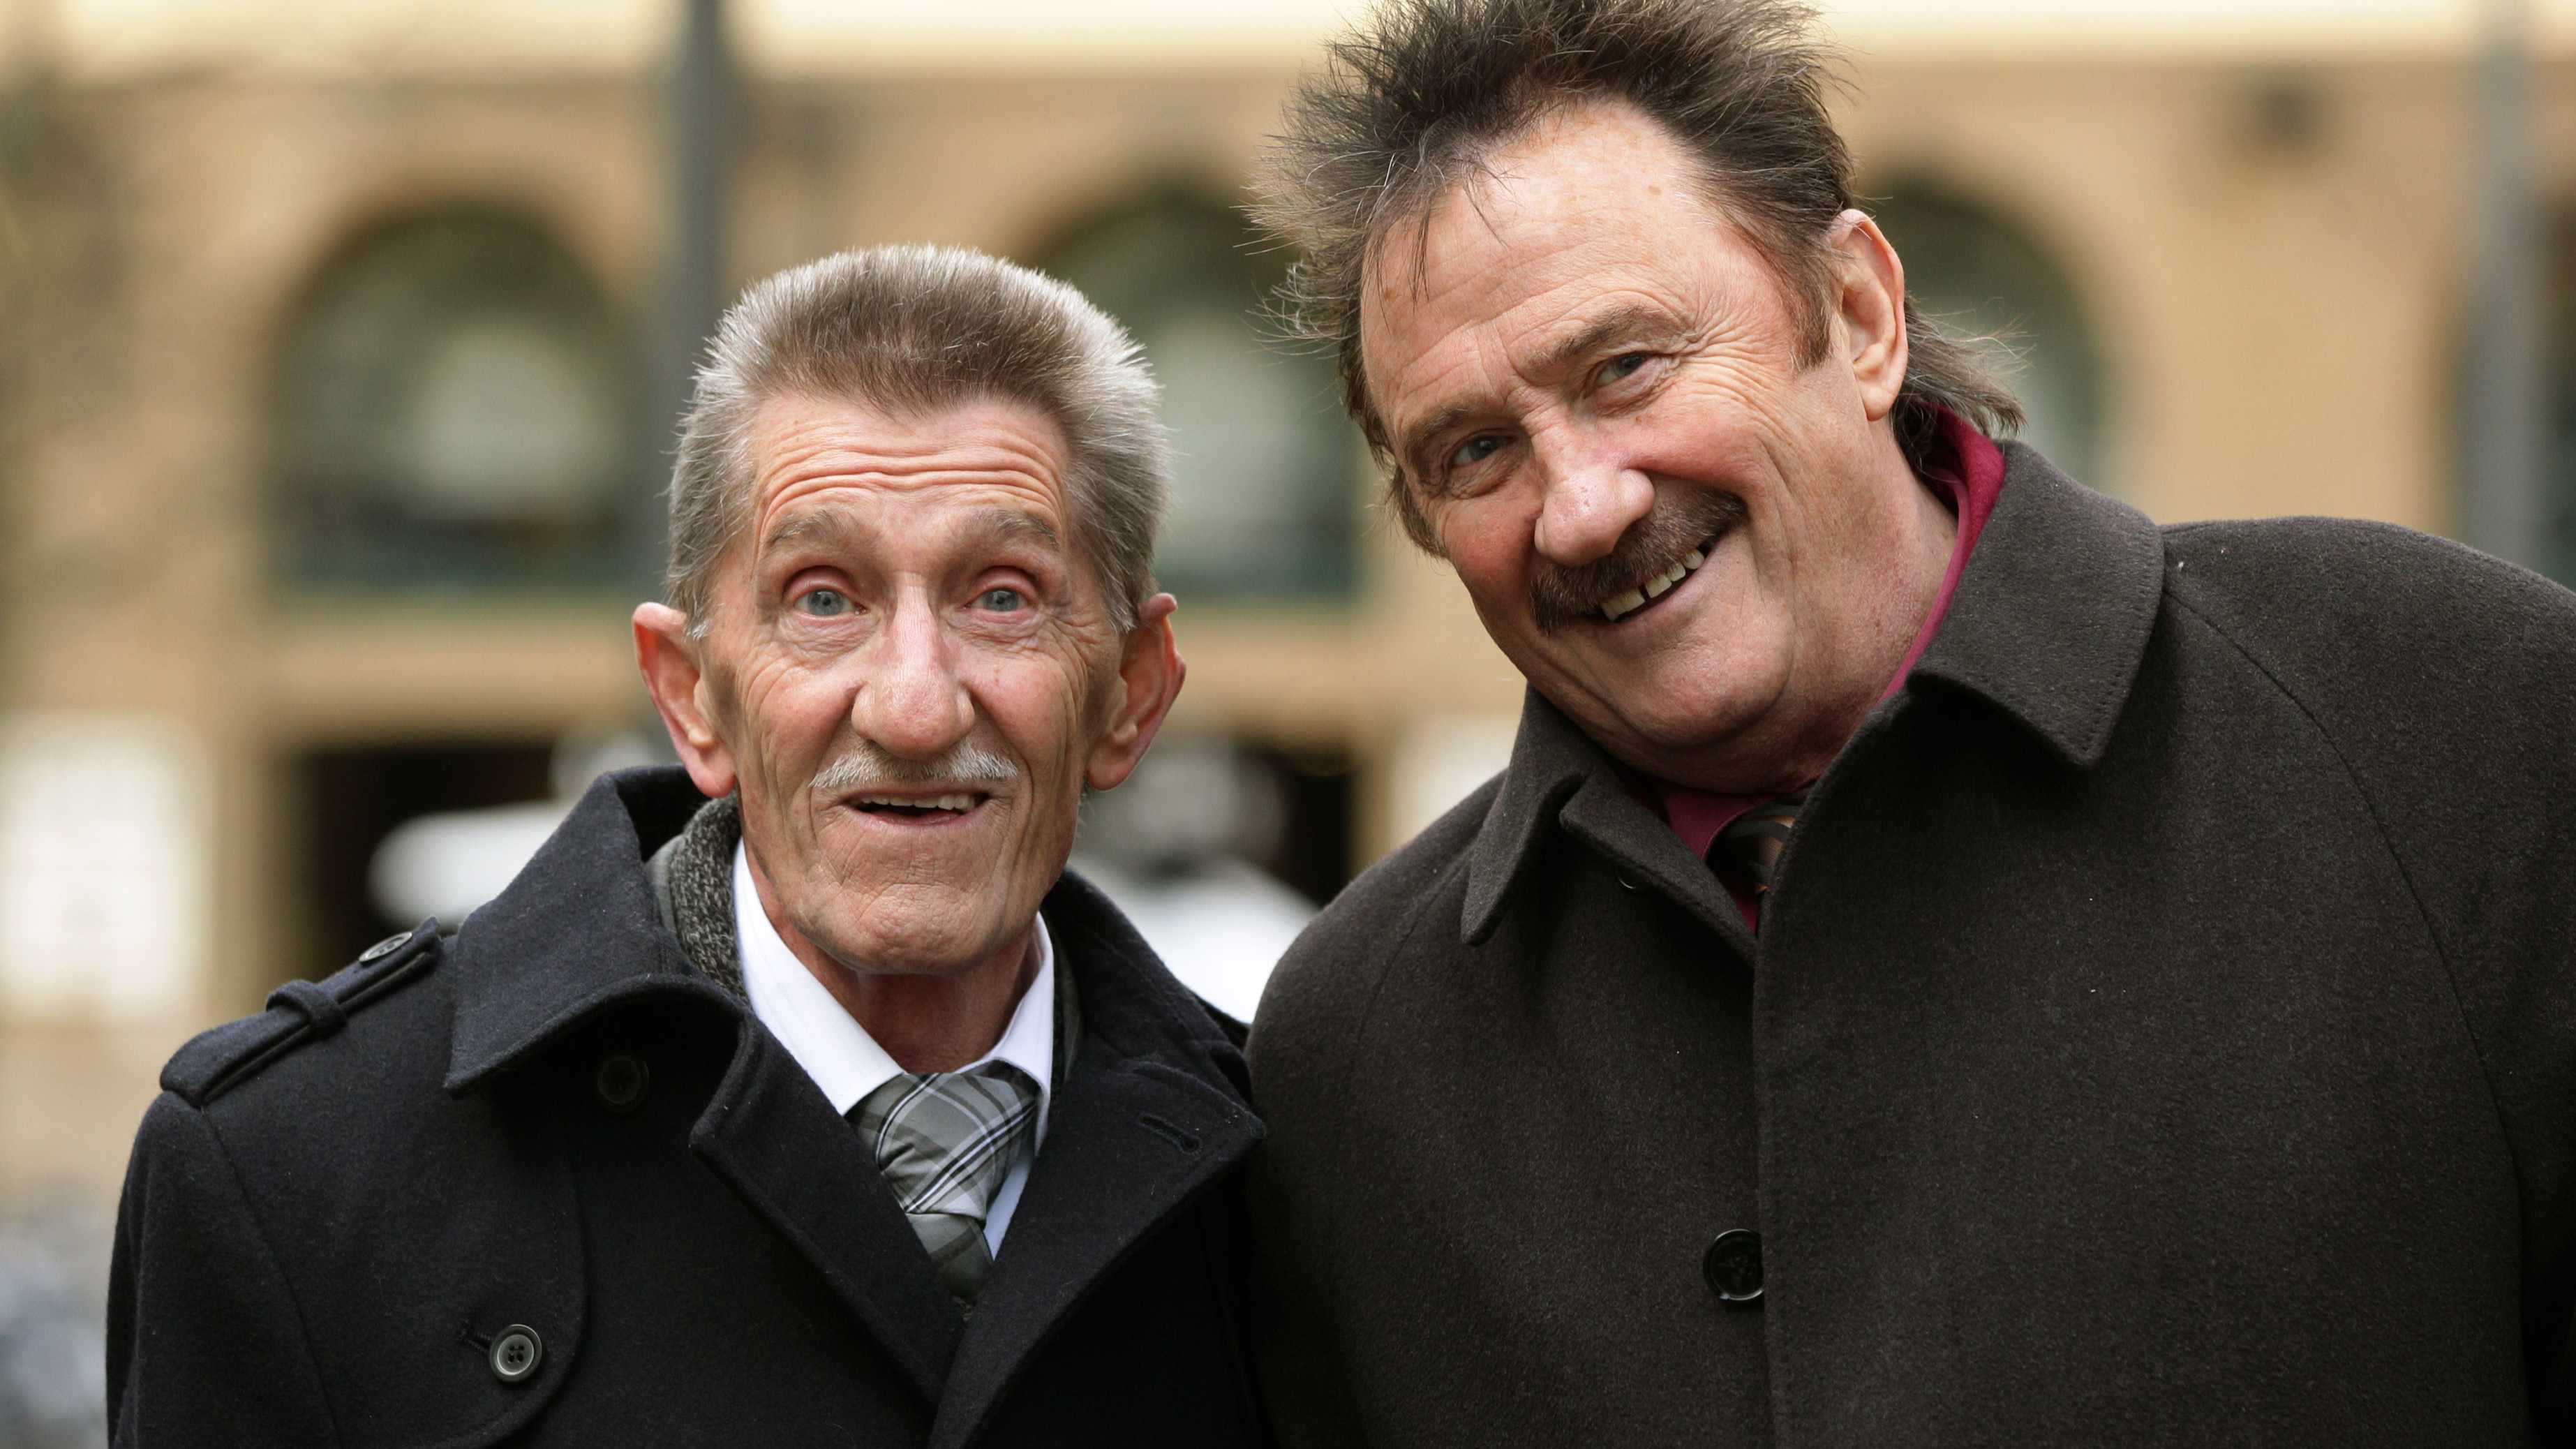 The Chuckle Brothers Are Set To 'Make Return To TV'